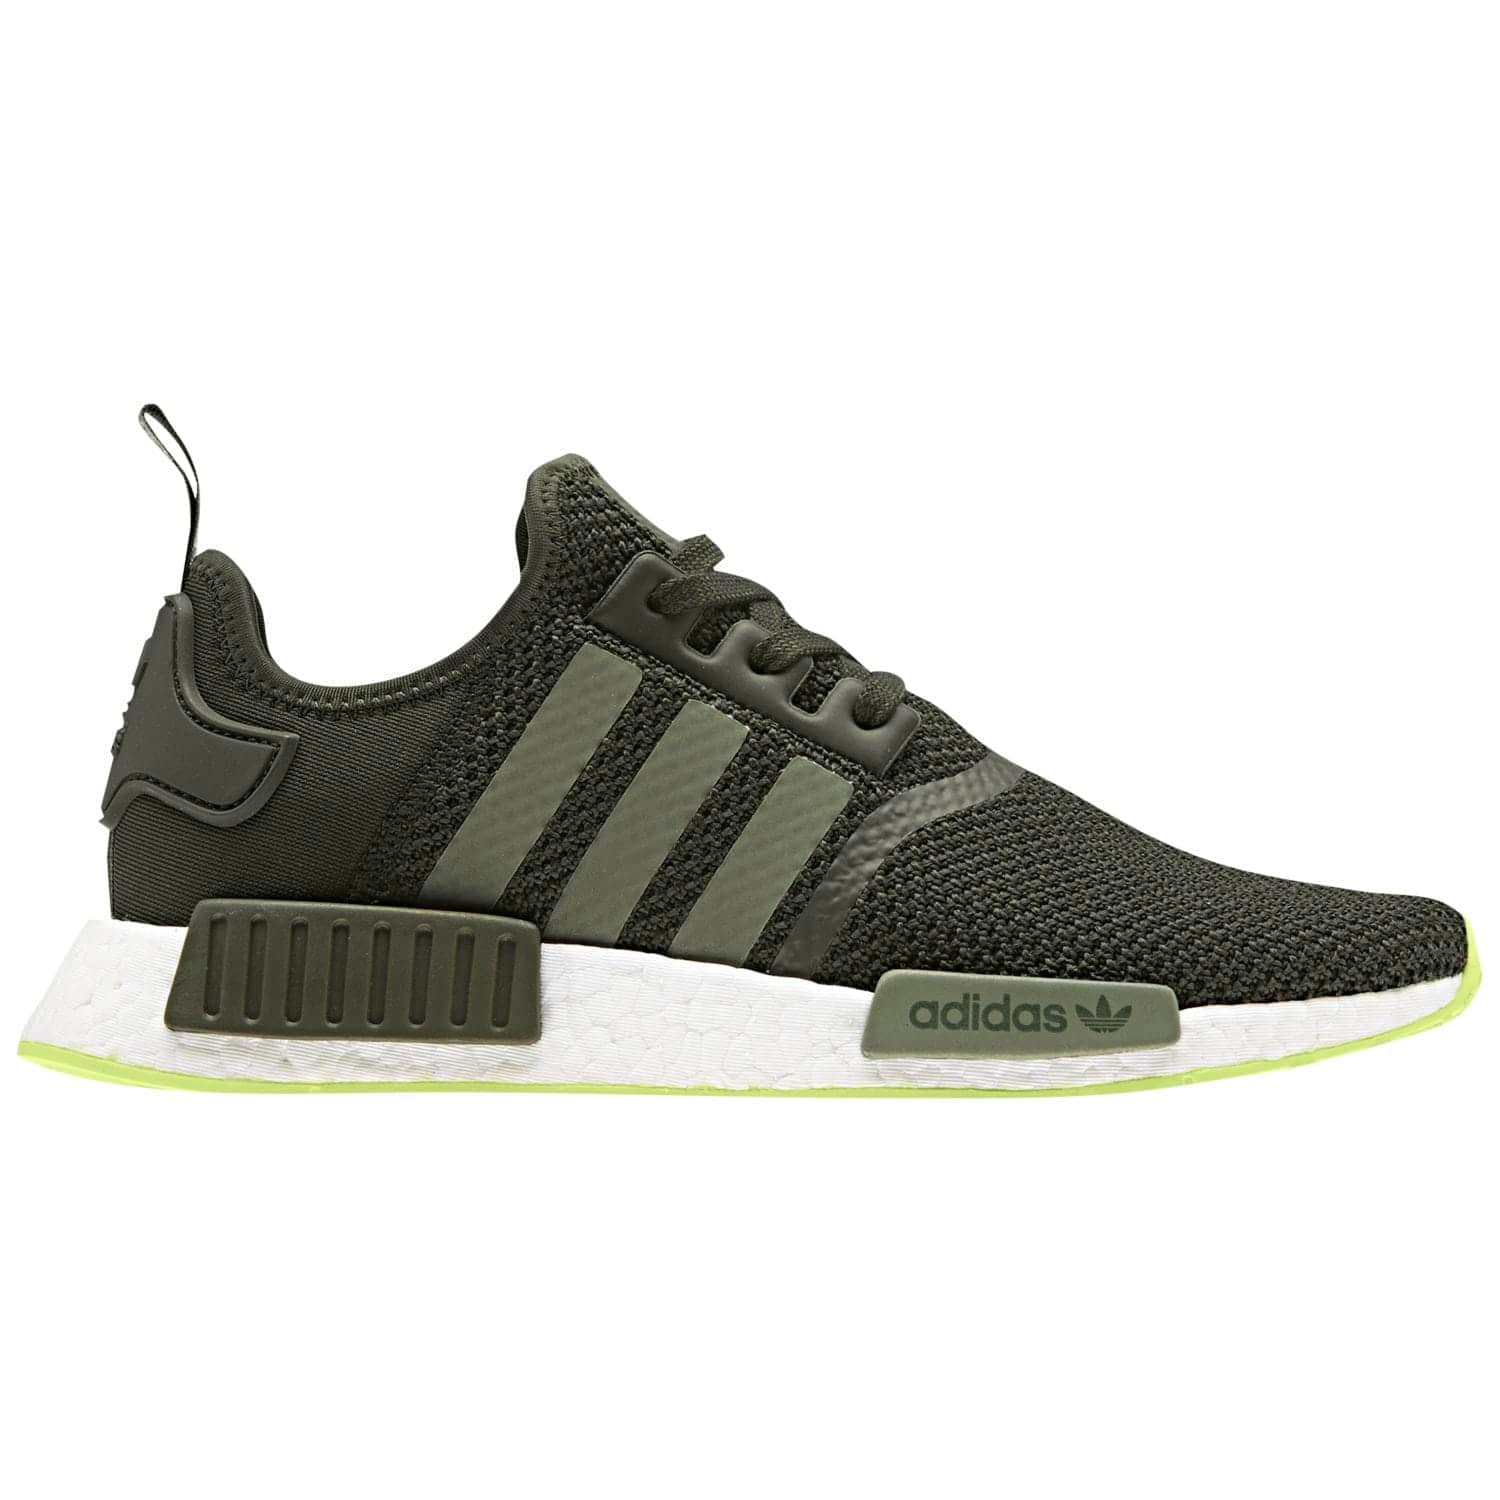 0203a1855 adidas Men s or Women s Originals NMD R1 Shoes - Slickdeals.net